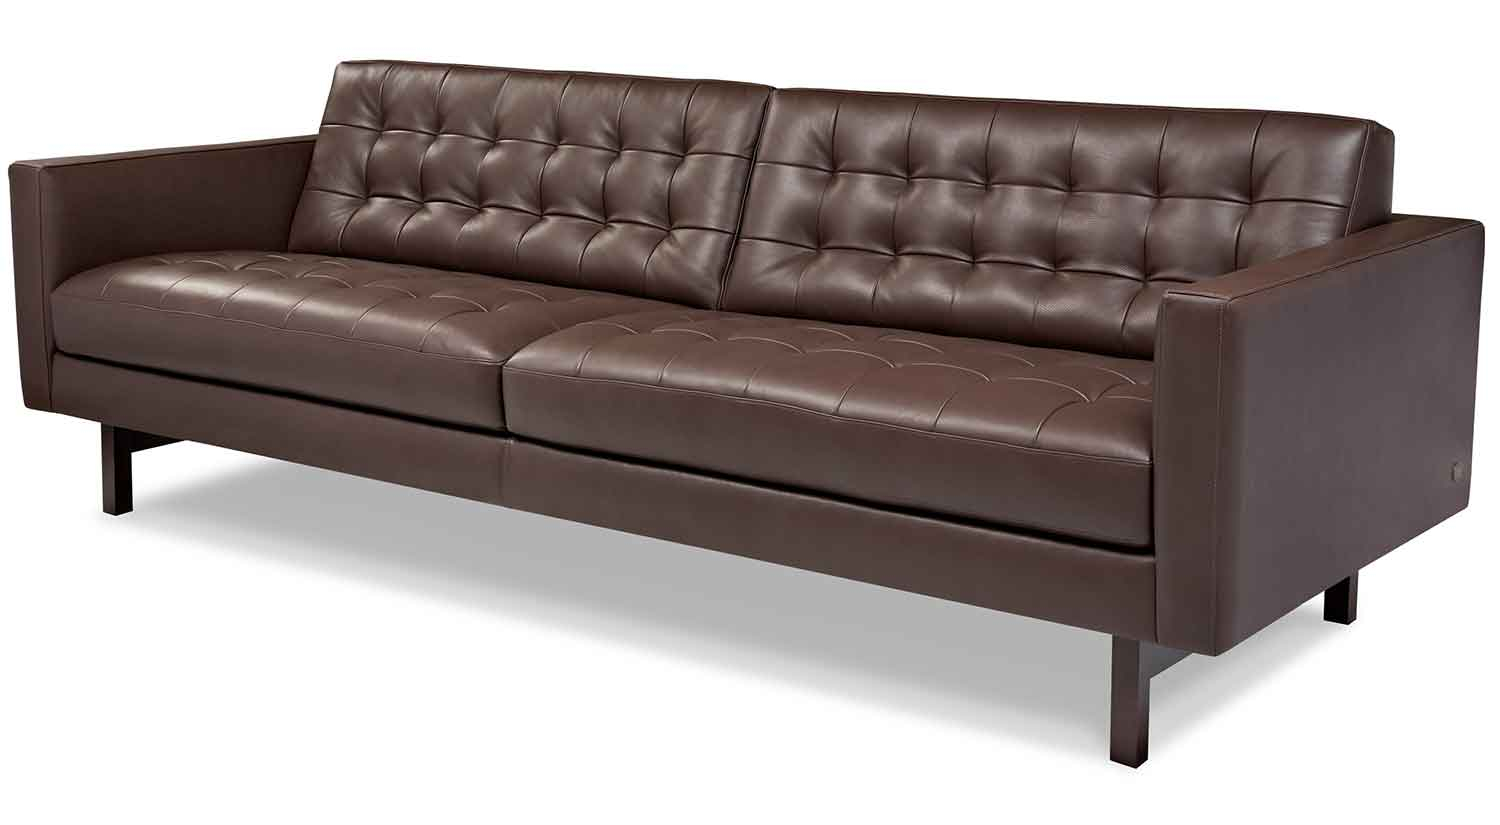 Circle Furniture – Parker Sofa | Designer Sofas Boston | Circle With Regard To Parker Sofa Chairs (Photo 1 of 20)